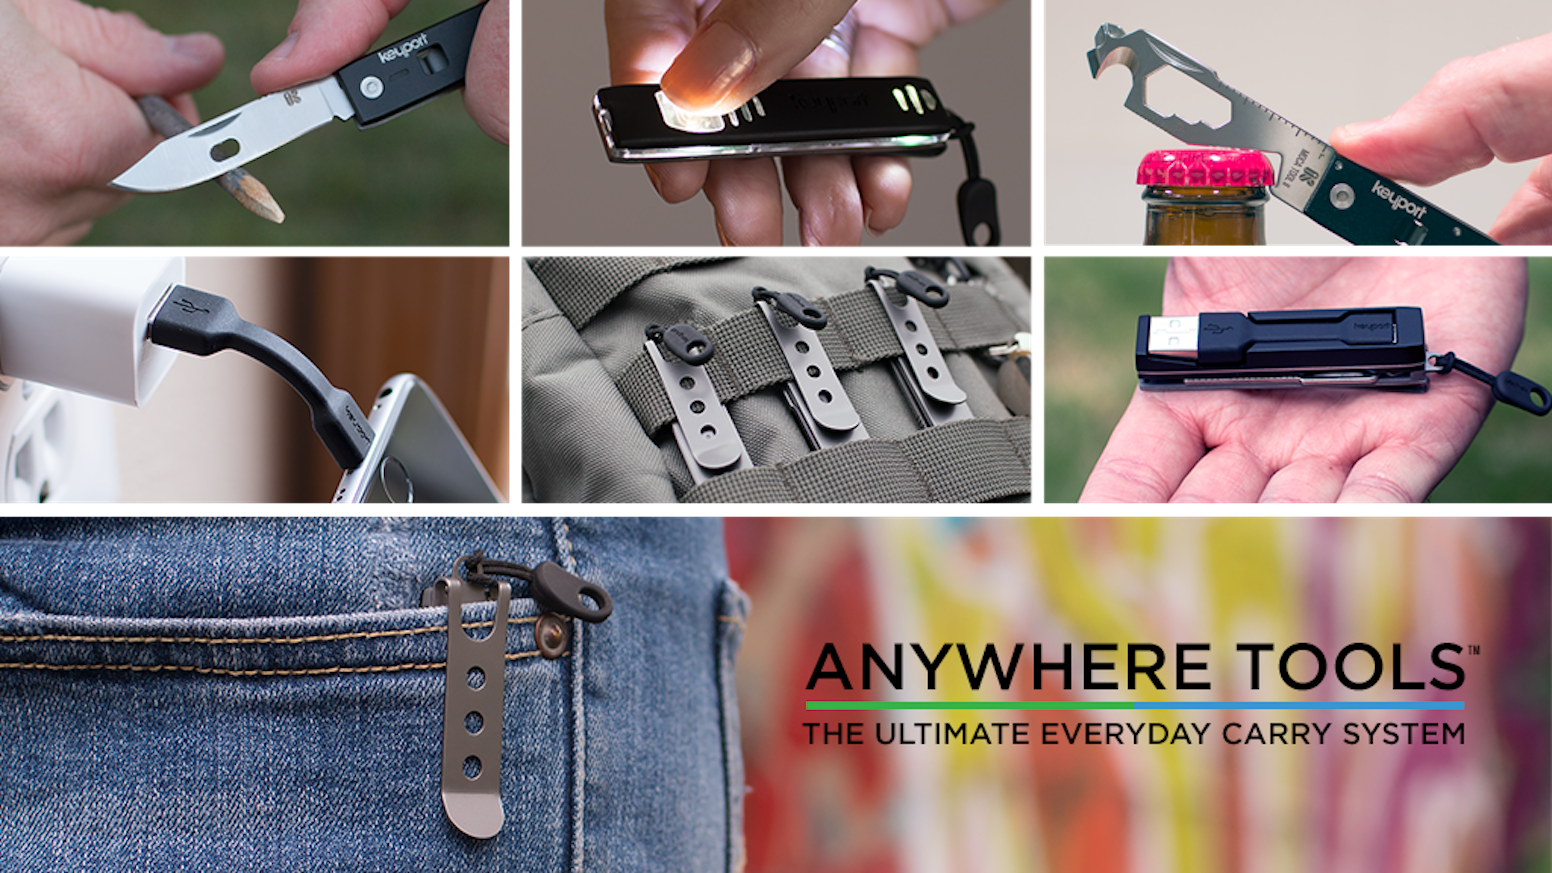 Modular tech & tools combine utility, convenience & style in a fully customizable, wearable system for all your everyday carry needs